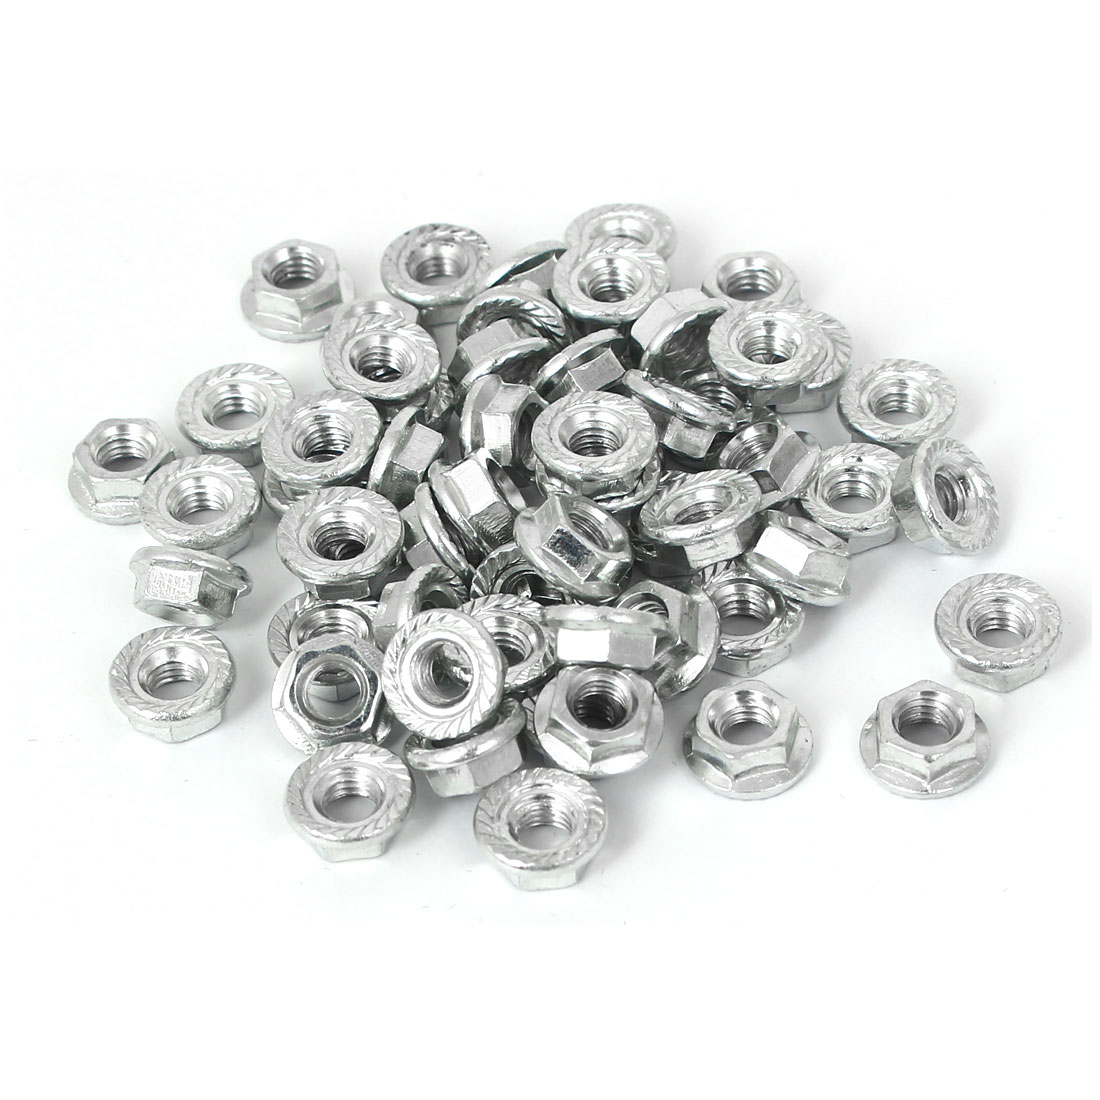 M5 x 0.8mm Pitch 5mm Height Carbon Steel Serrated Hex Flange Nuts DIN 6923 60PCS